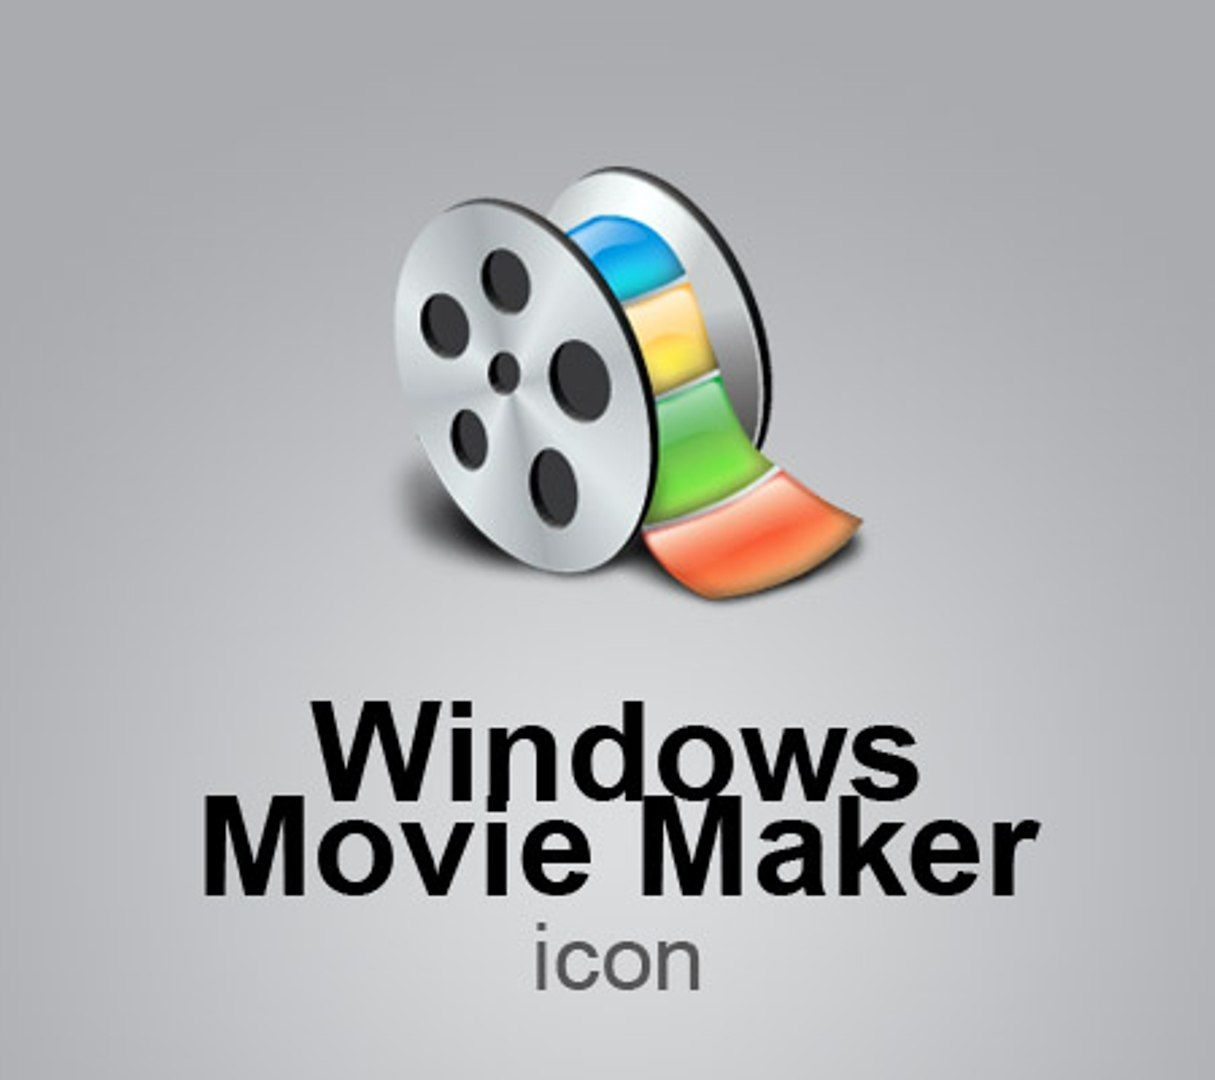 Windows Movie Maker 2020 Crack With Activation Code Latest Software